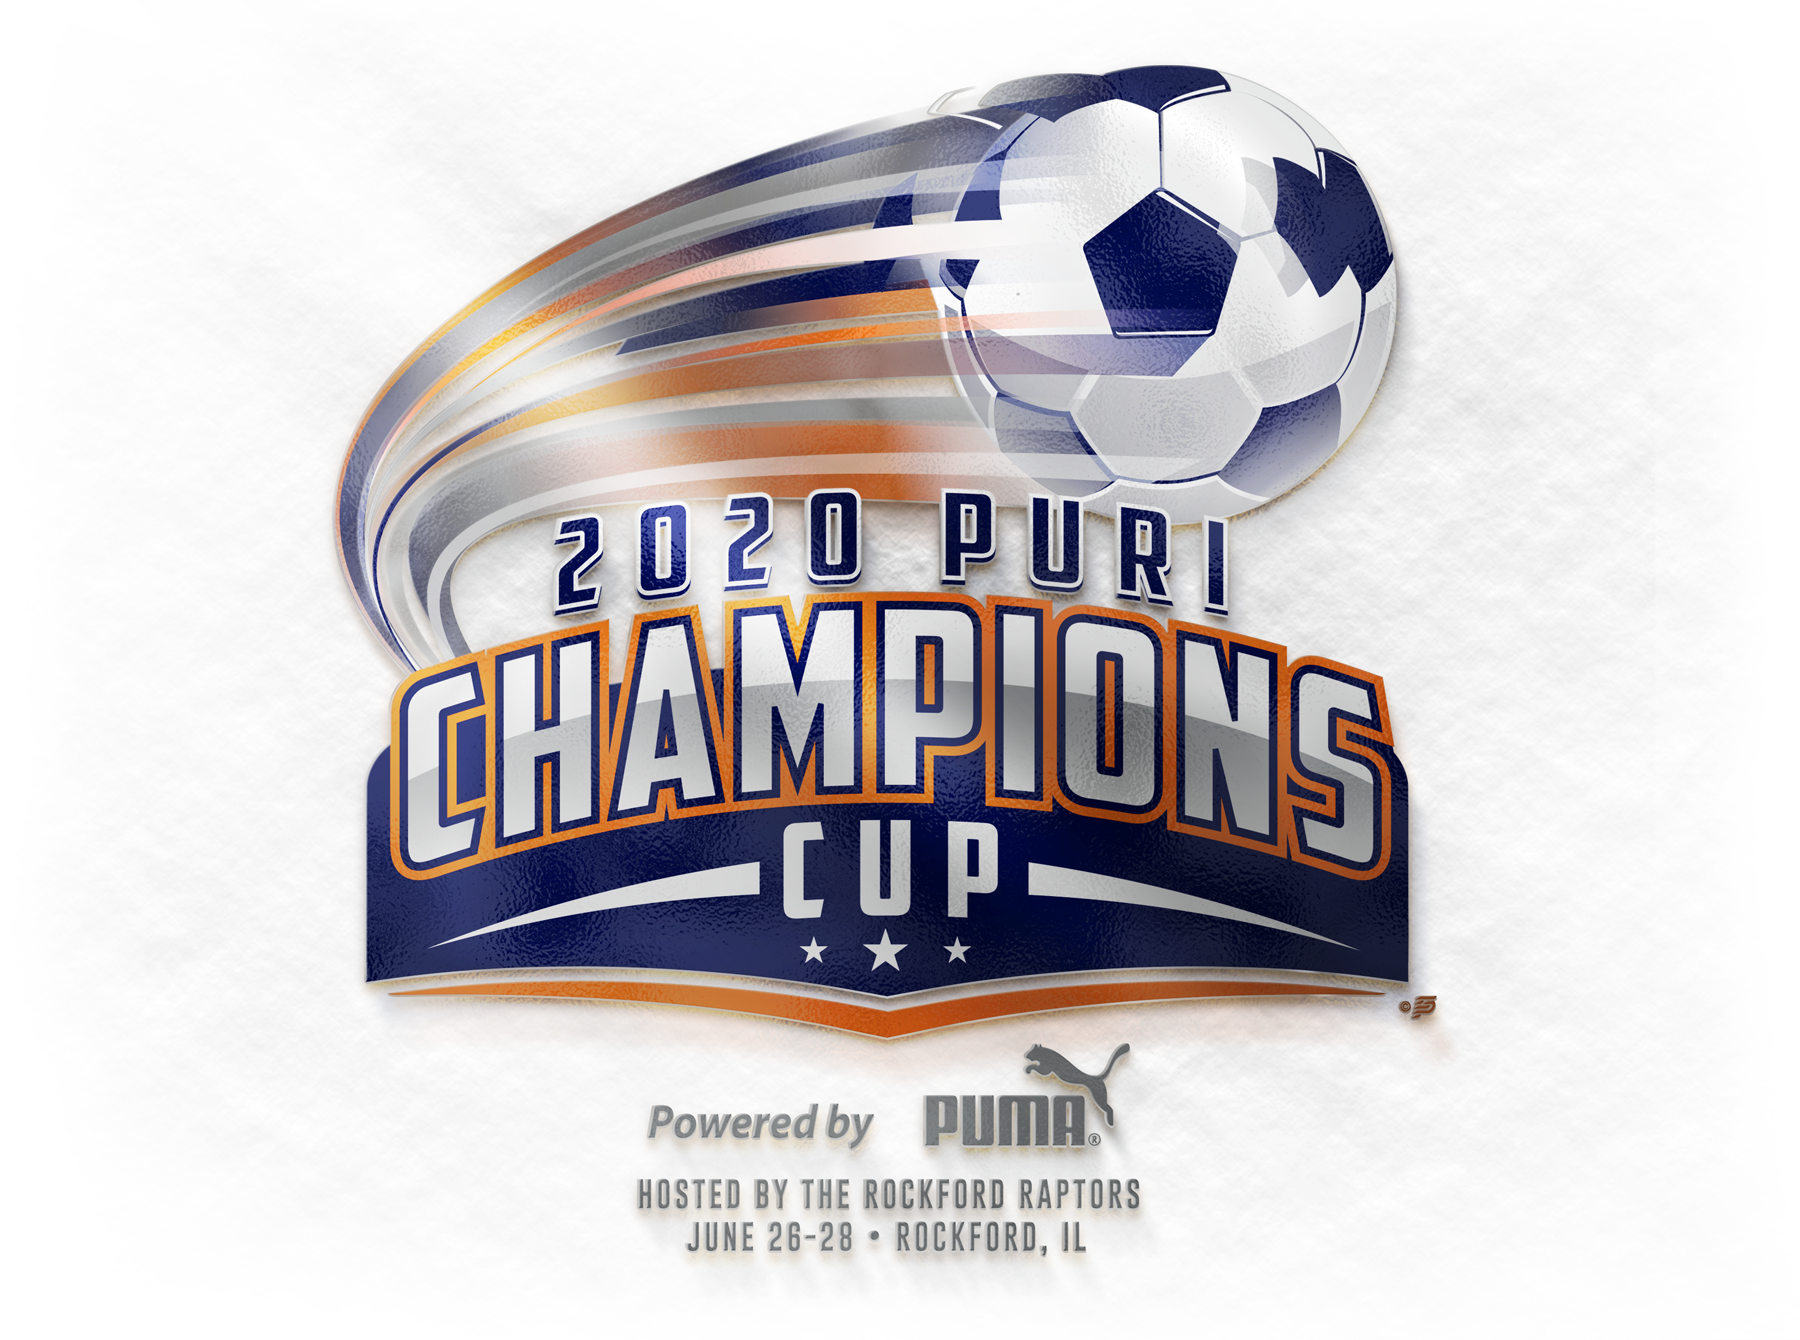 2020 Puri Champions Cup